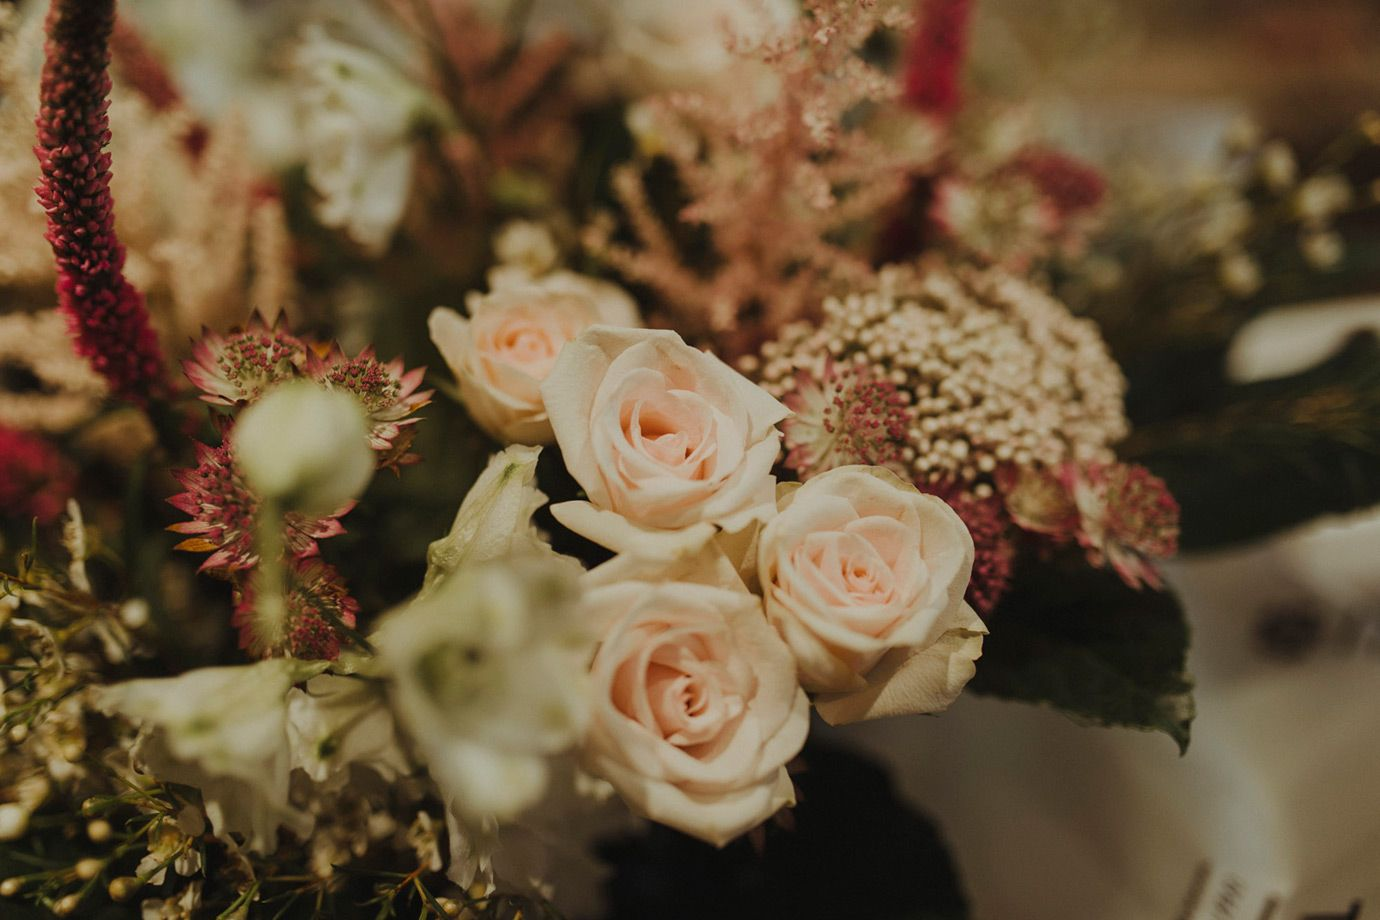 Florist Flower Delivery In Didsbury Manchester Uk Flower Lounge